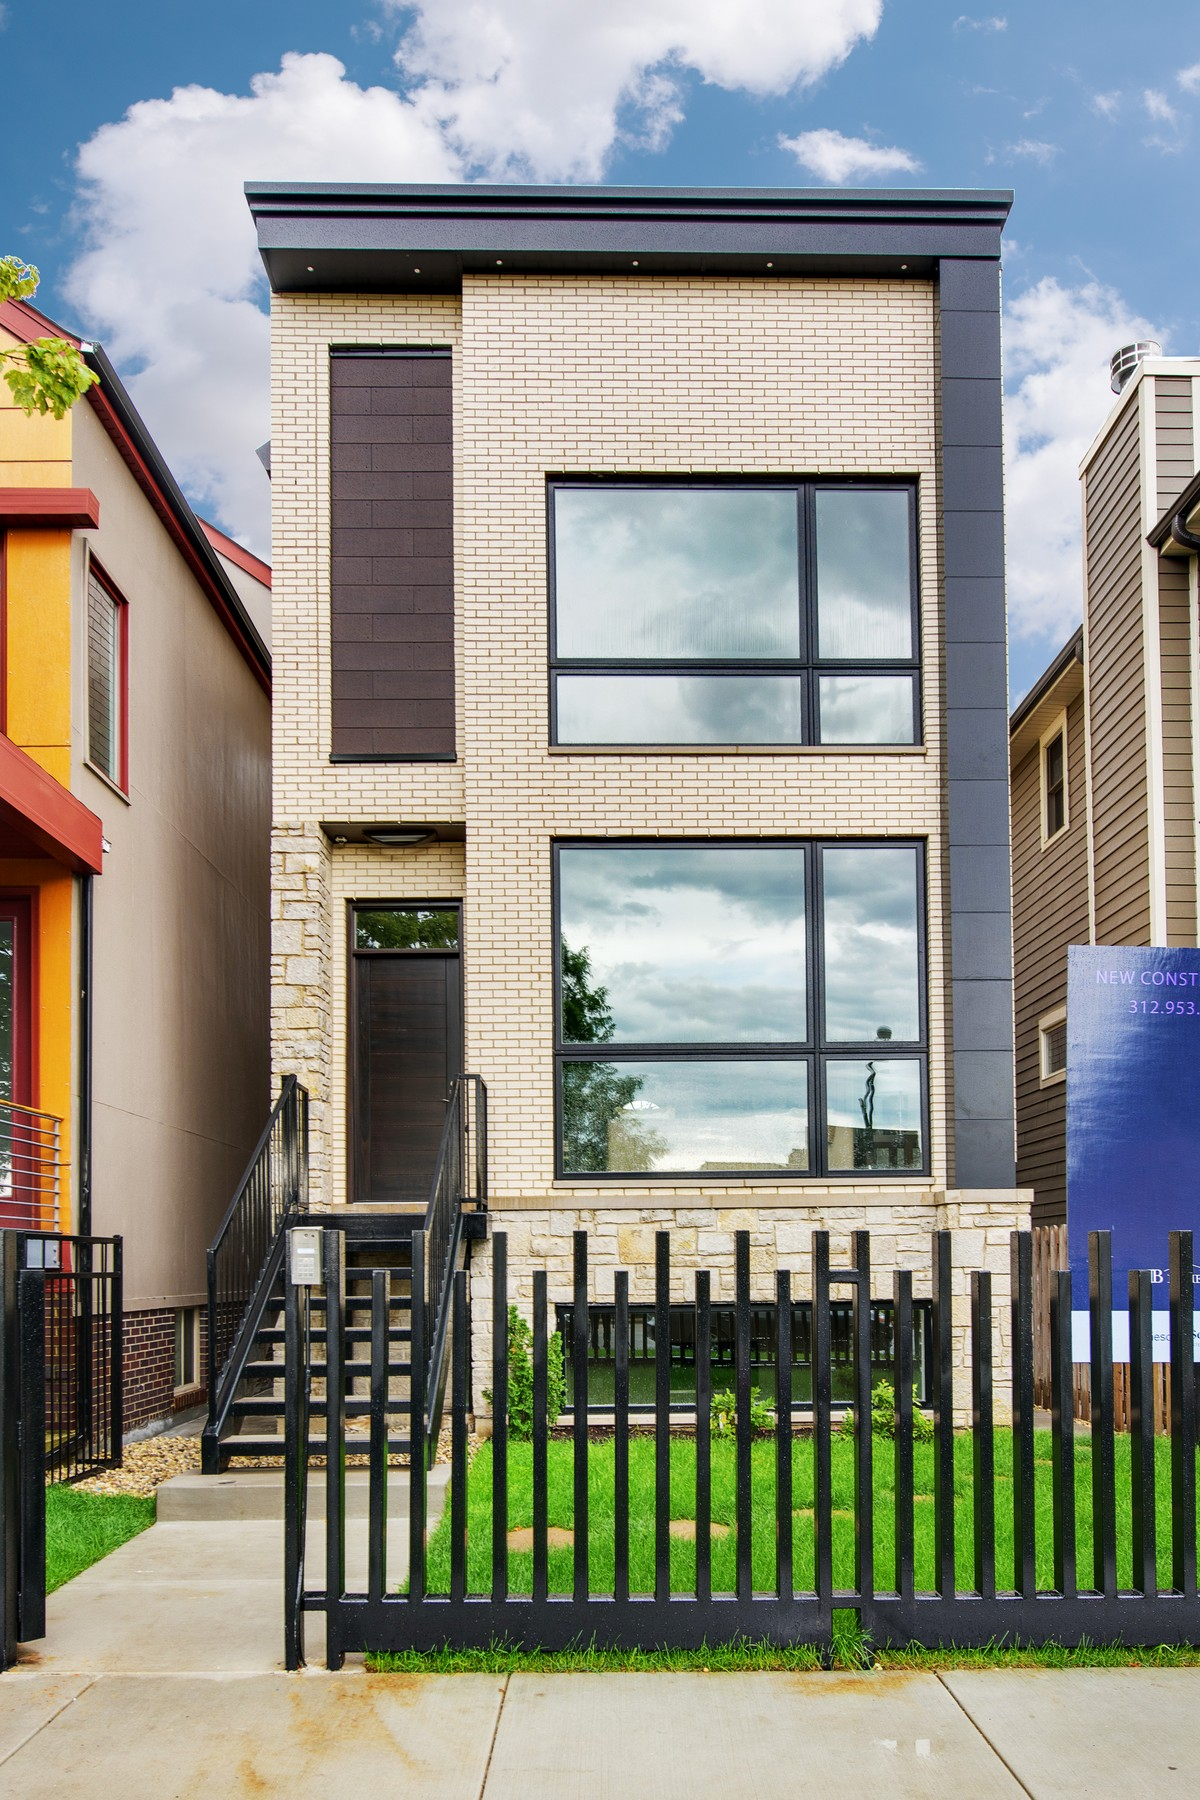 Single Family Home for Sale at New Construction Masonry Home By Exceptional Builder 1625 W Wolfram Street Lakeview, Chicago, Illinois, 60657 United States